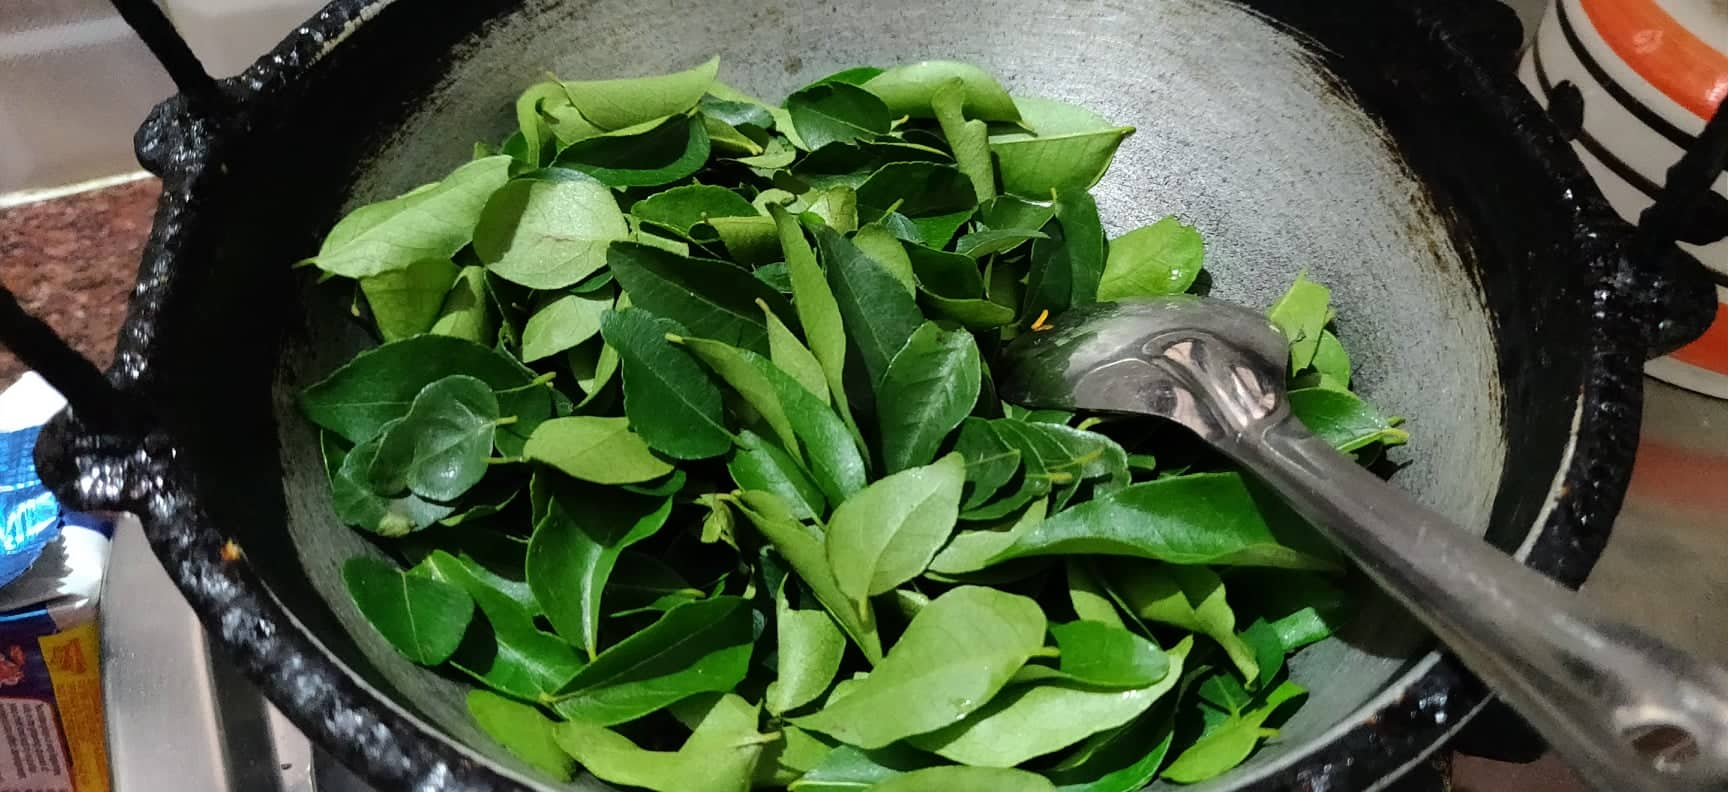 curry_leaves_rice - 82439567_485663815428623_6960822671646916608_n